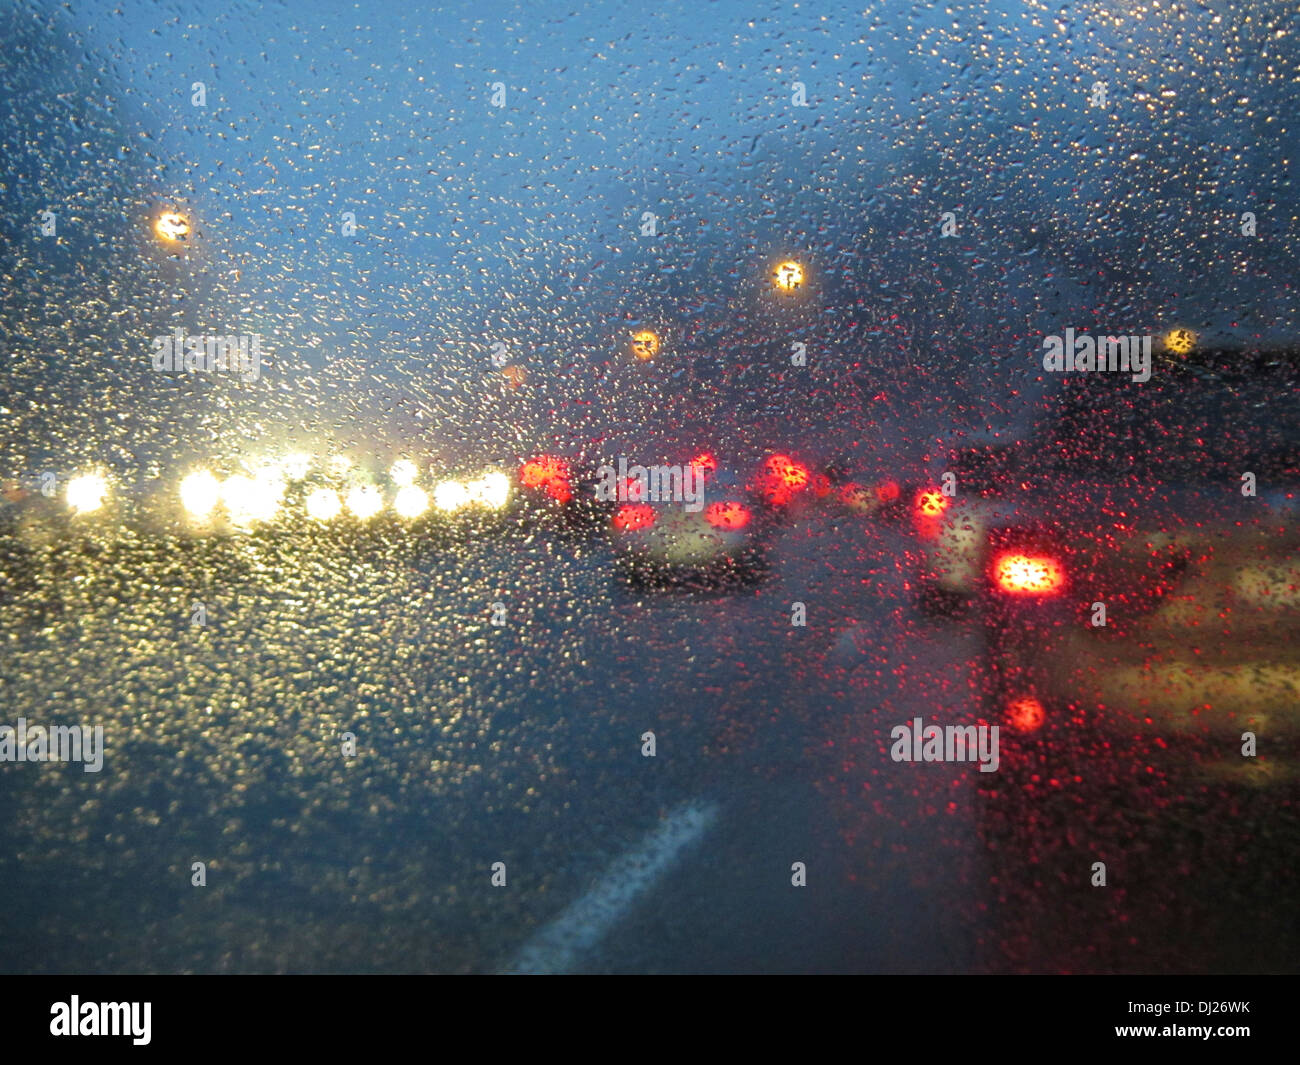 Driving on a highway at dusk in rush hour traffic with rain and mist gathering on the windshield. - Stock Image